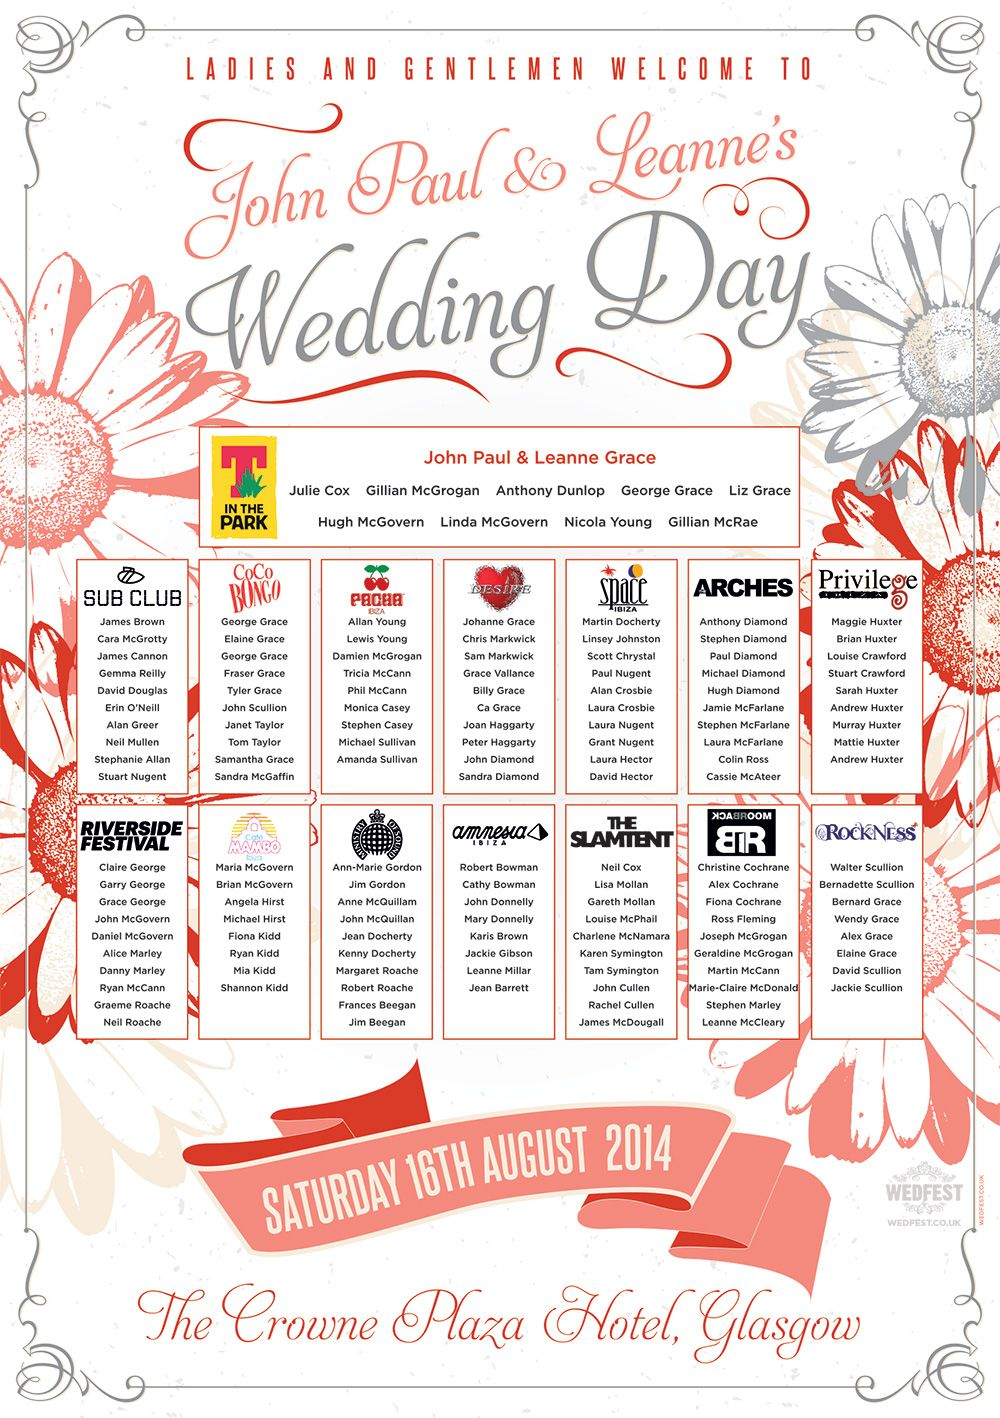 Pin by WEDFEST on Wedding Table and Seating Plans | Pinterest ...